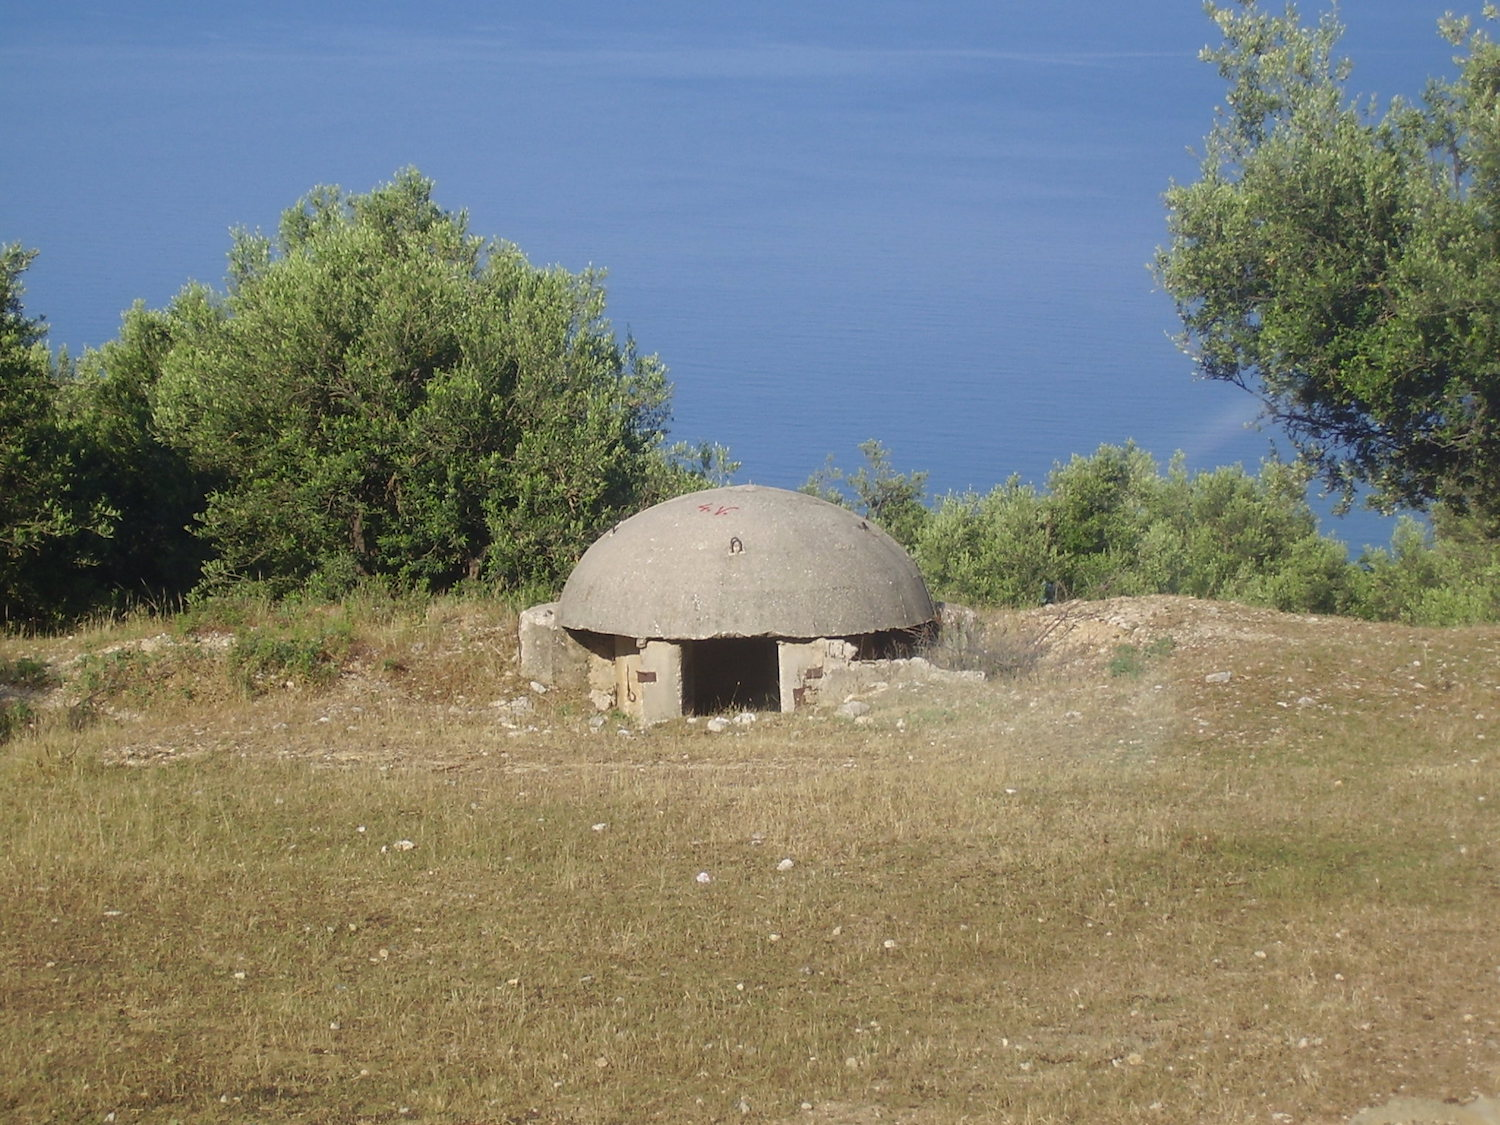 Pic: One of the ubiquitous Communist-era concrete bunkers